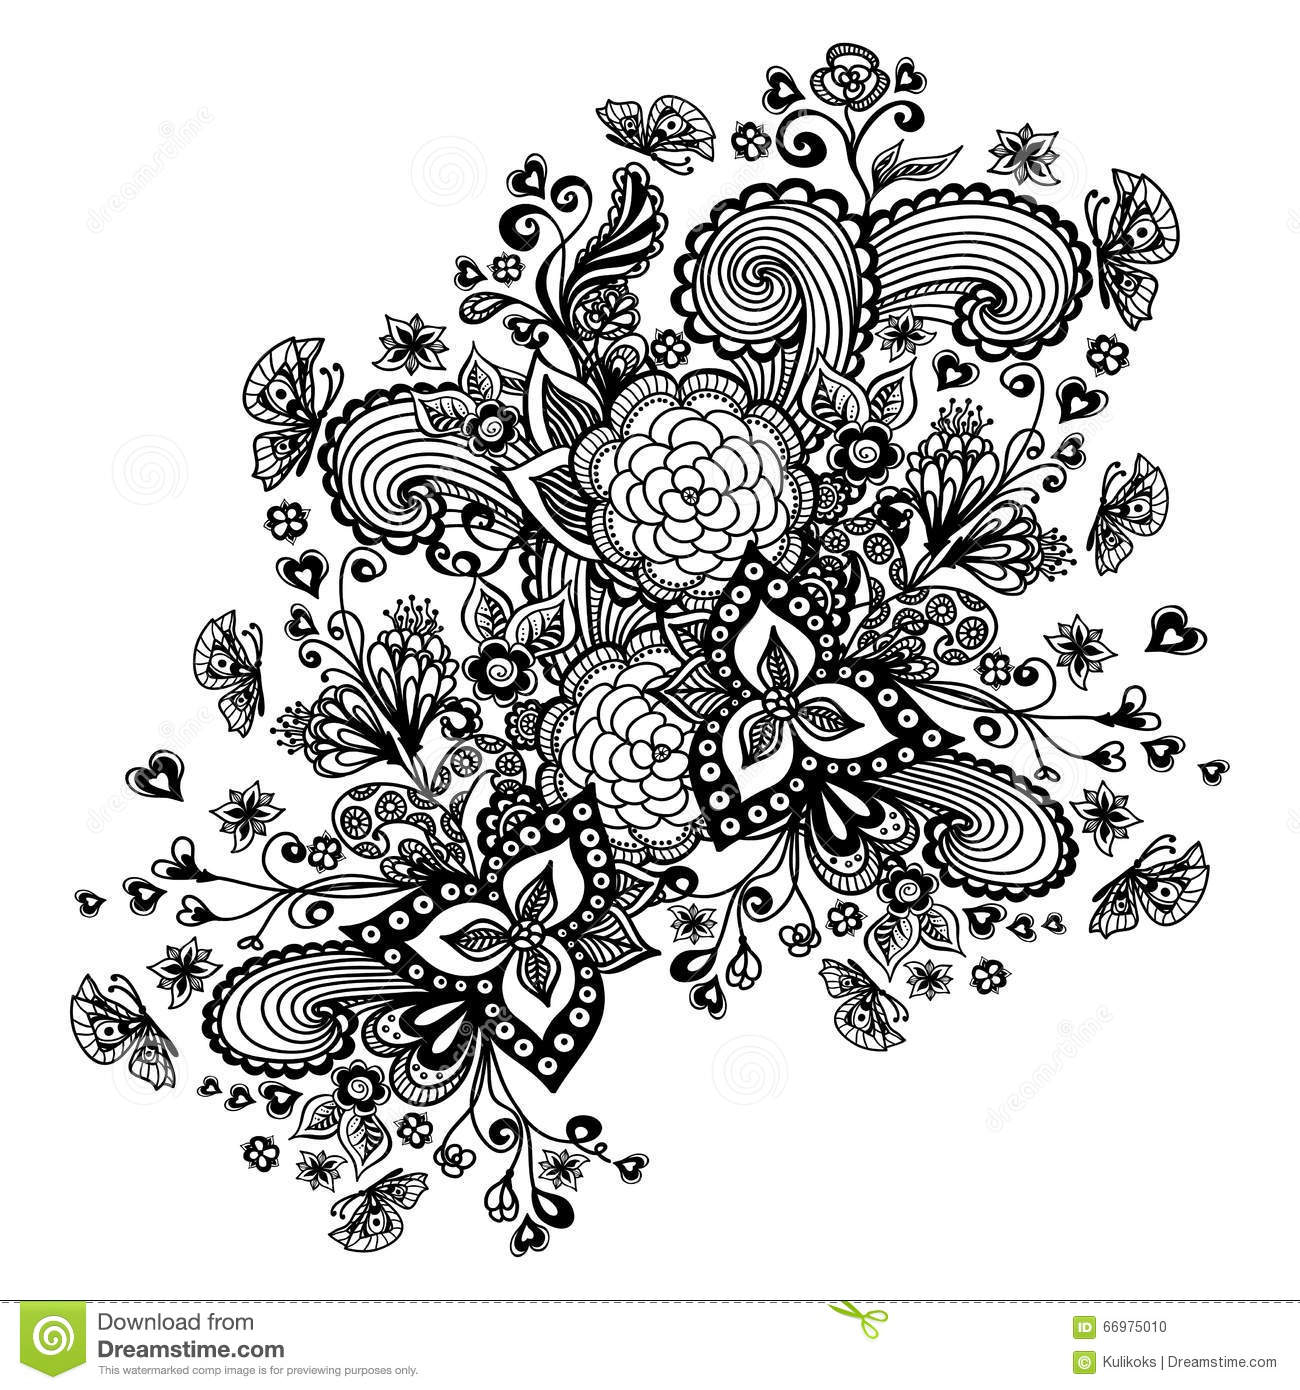 Zen-Doodle Background With Flowers Butterflies Hearts Black On White ...